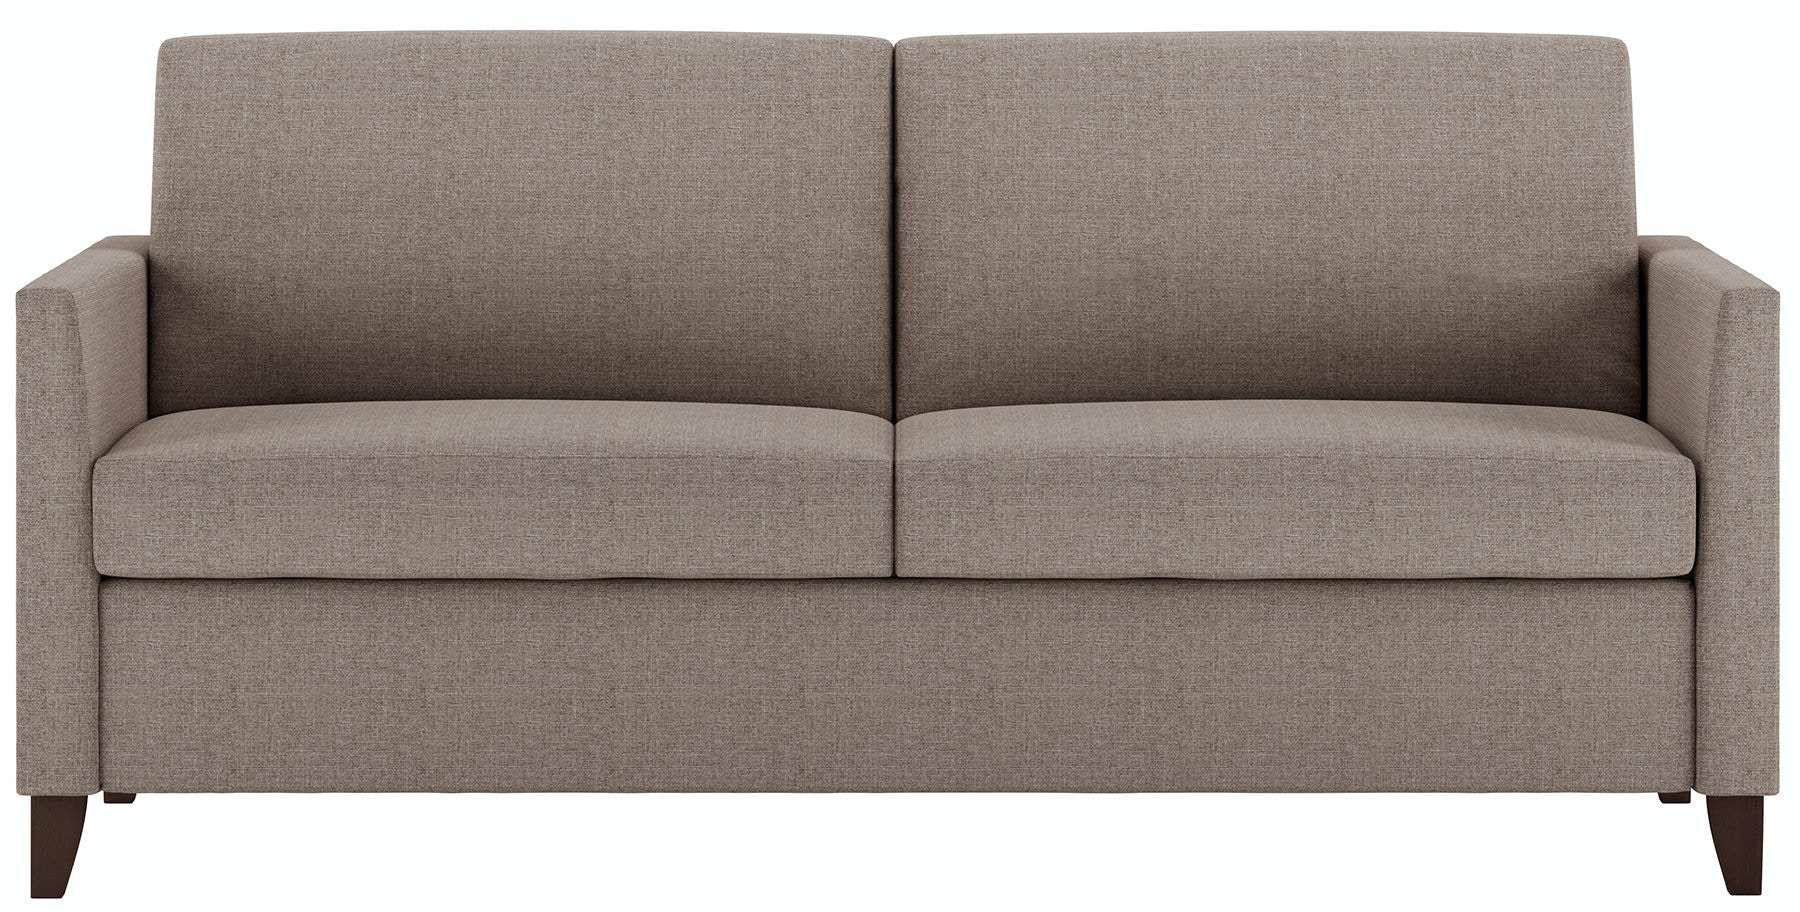 American Leather Living Room Sofa Sleeper Queen Size Hrs So2 Qs